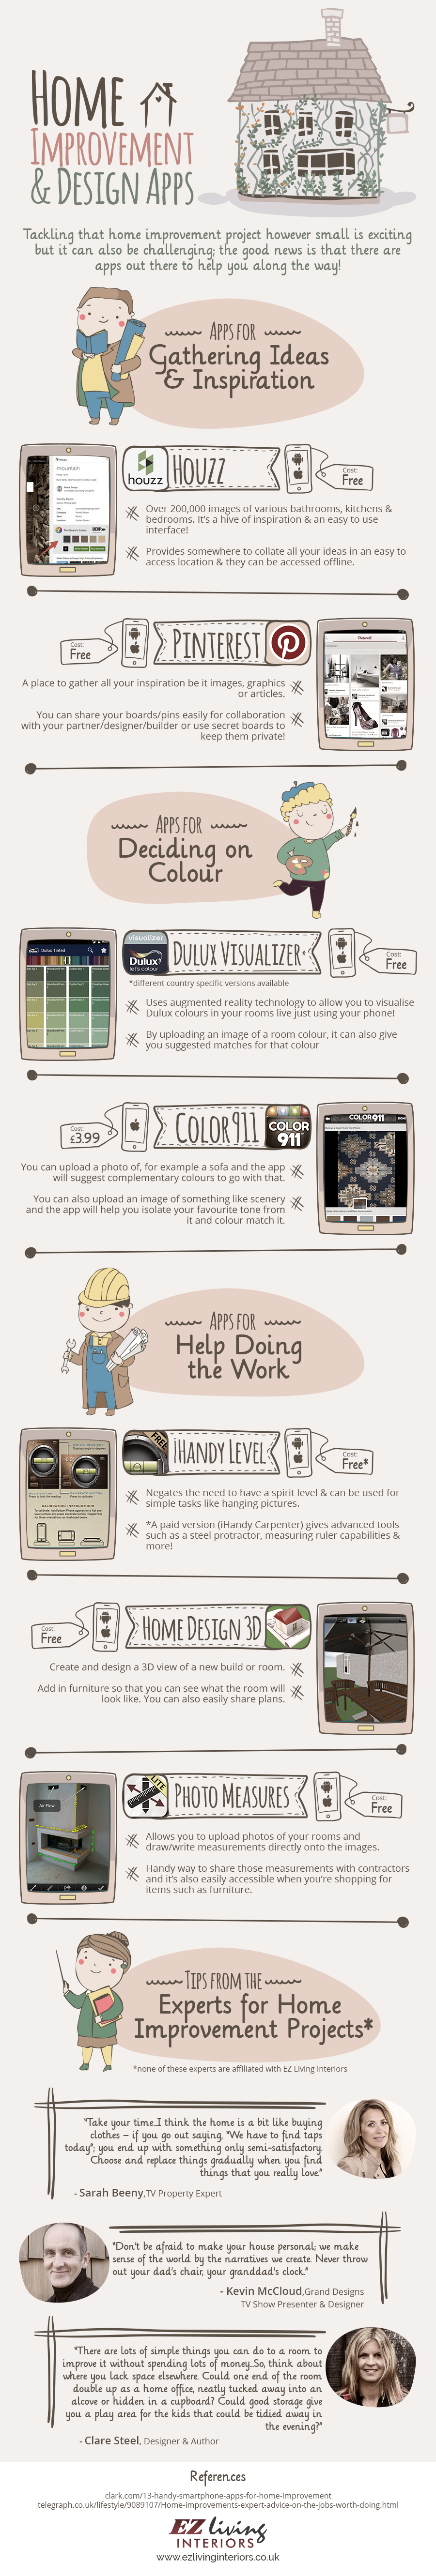 Top 7 Home Improvement Mobile Apps, Tips and Ideas - Infographic